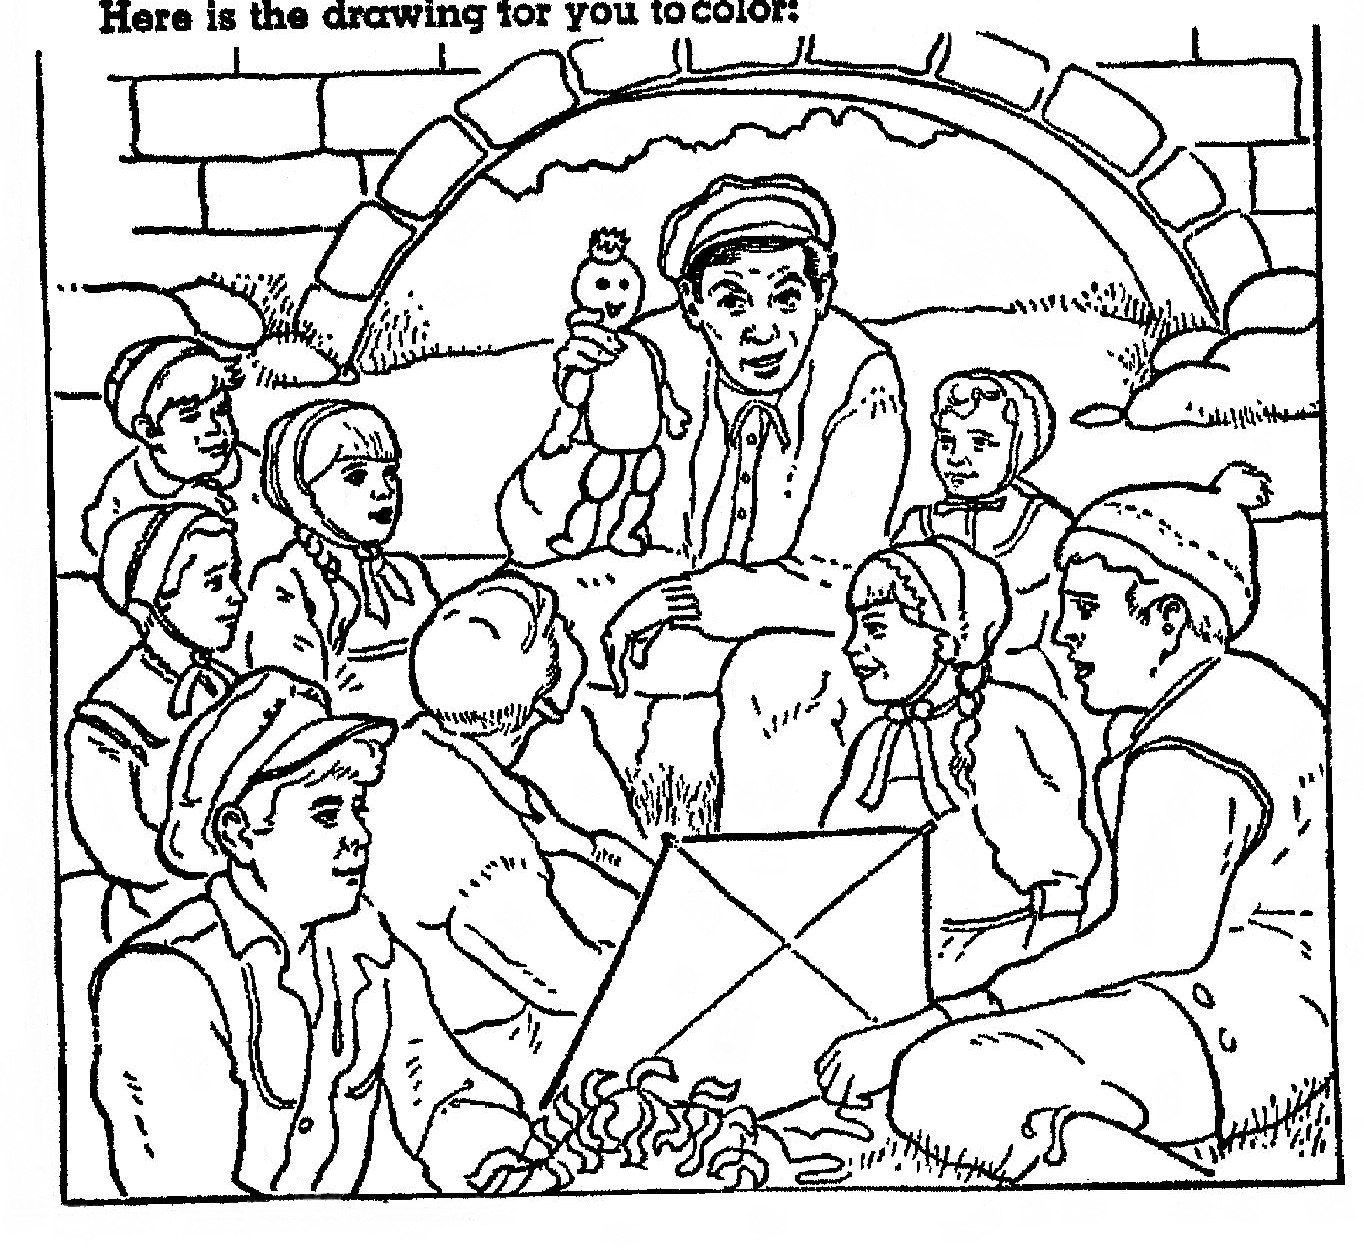 h c andersen coloring pages - photo#1